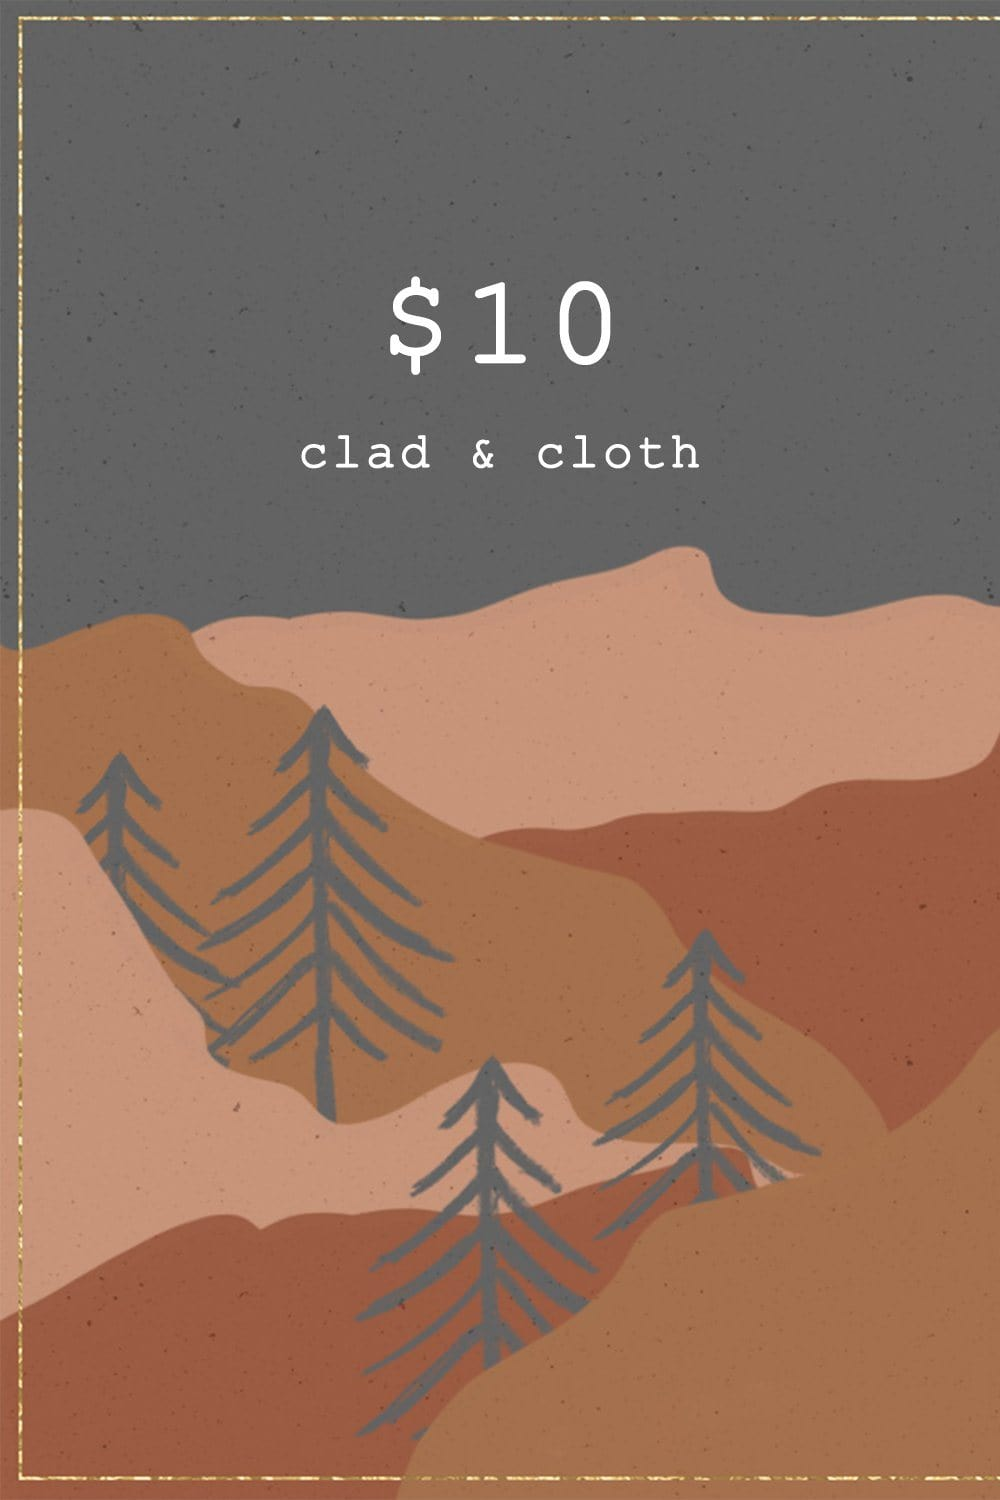 CLAD & CLOTH Gift Card - $10 Gift Card n/a Clad and Cloth